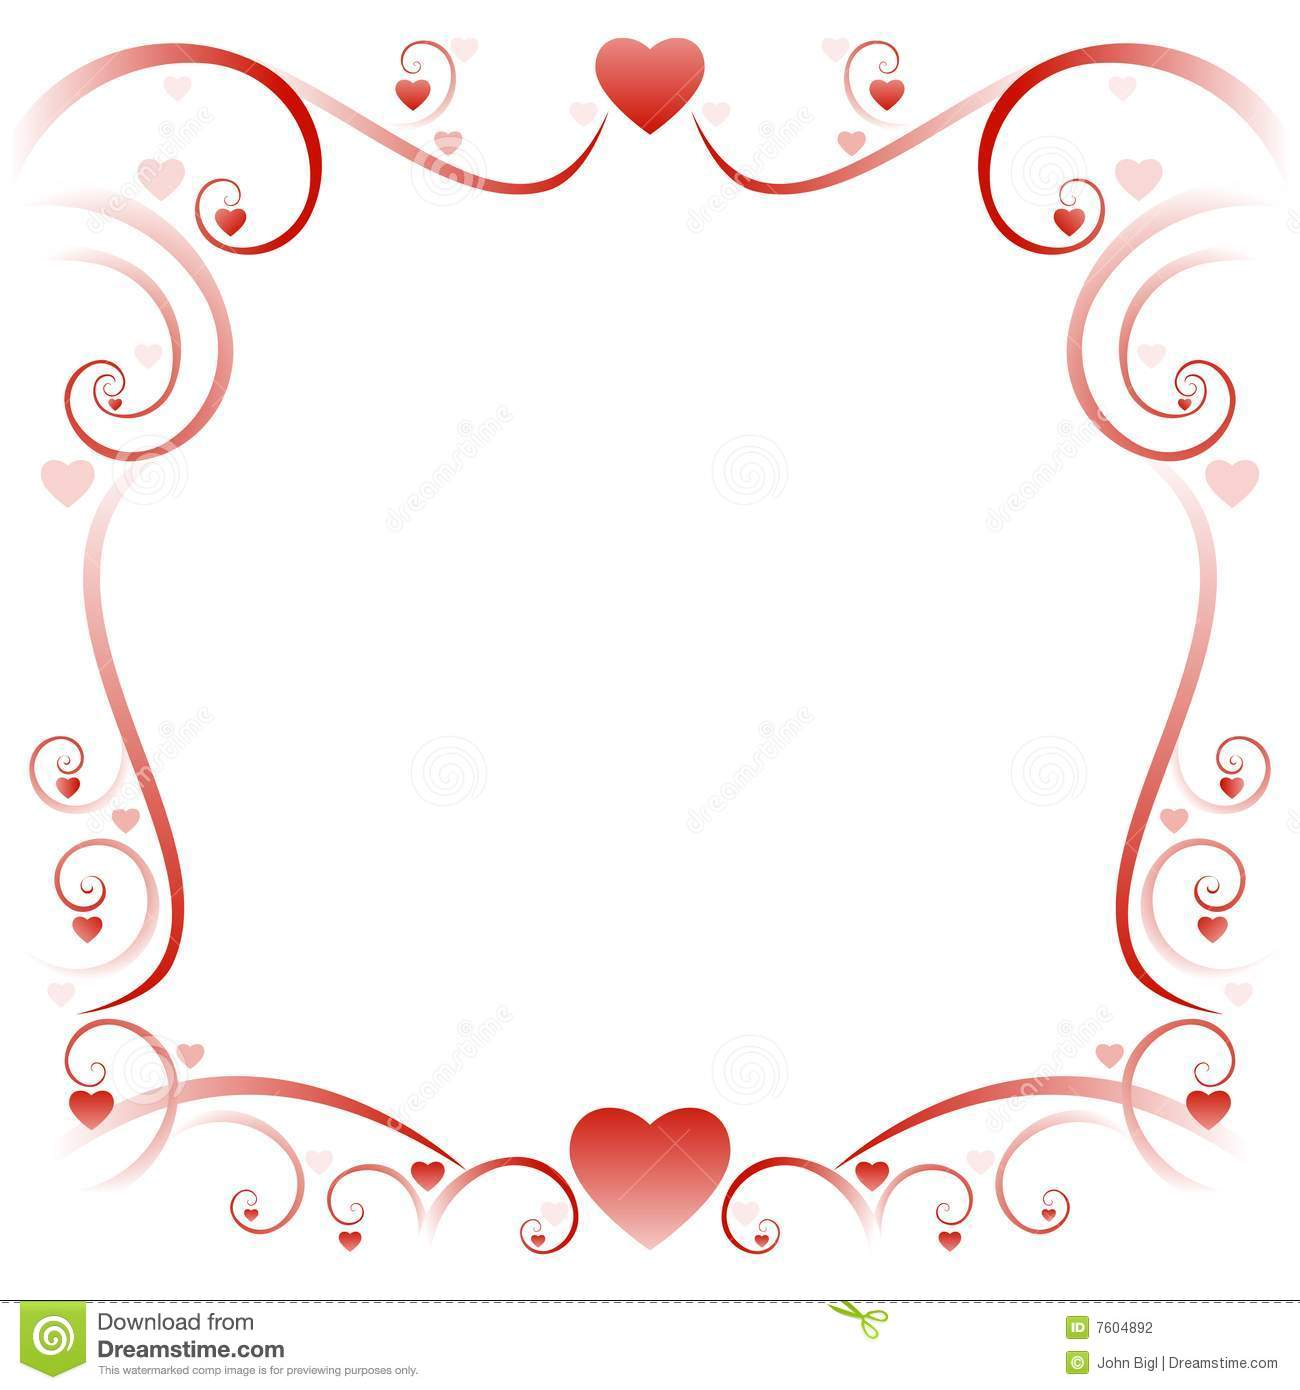 More similar stock images of ` Swirly love border 01 `